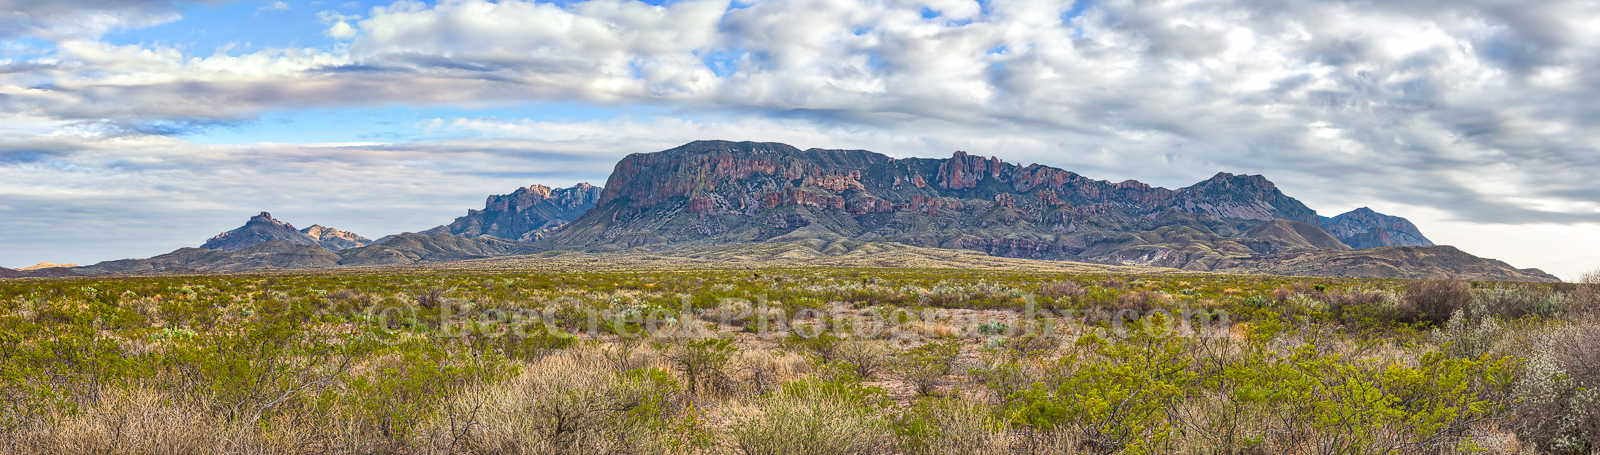 Chiso Mountian, landscape, pano, panorama, Big bend national park, scenic, clouds, Chihuahuan desert, creosote bush, desert, mountains, , photo